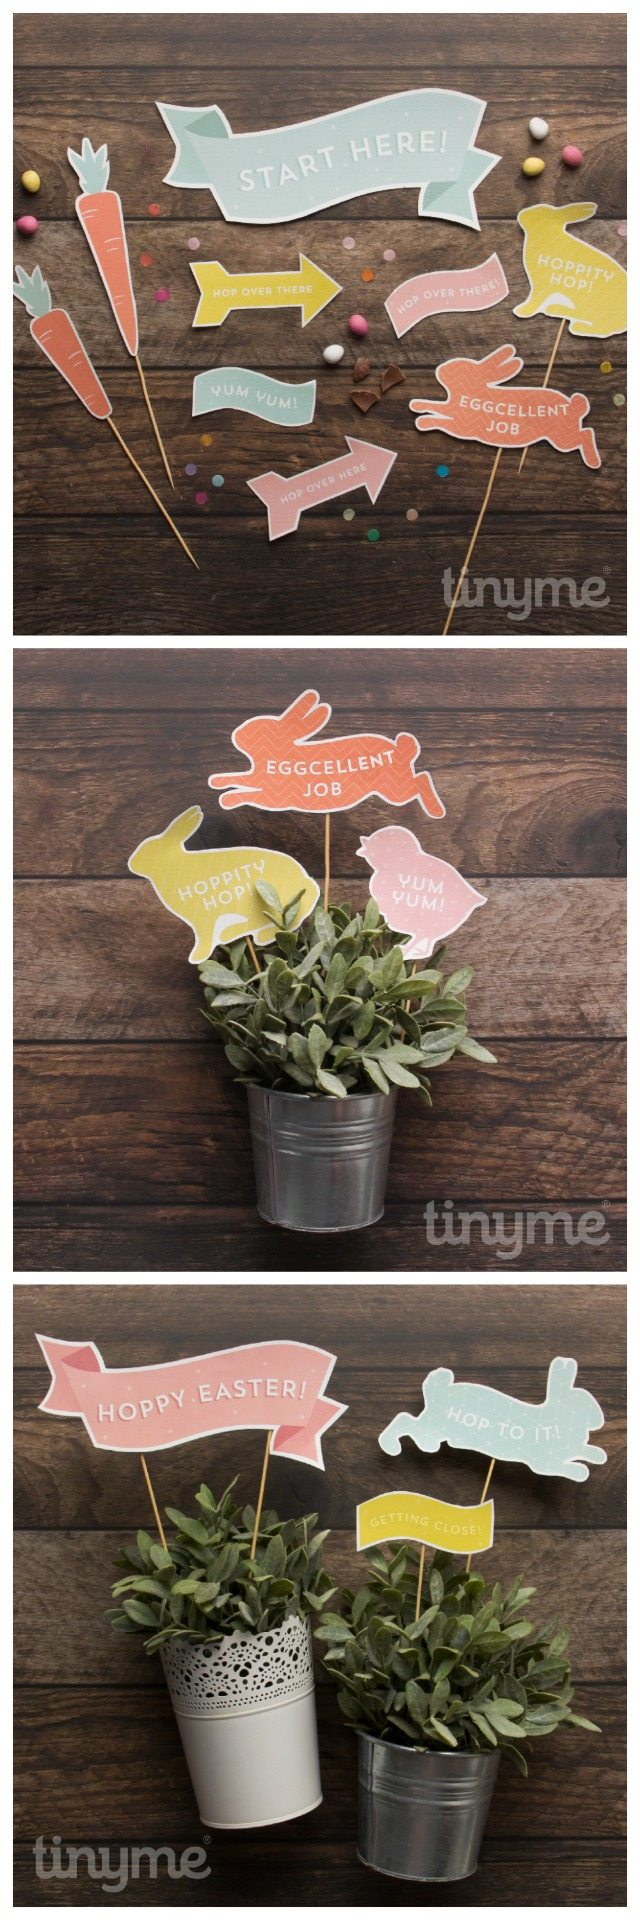 These printable will help you to have a wonderful Easter Egg hunt with the kids - why not pop along and check them out!